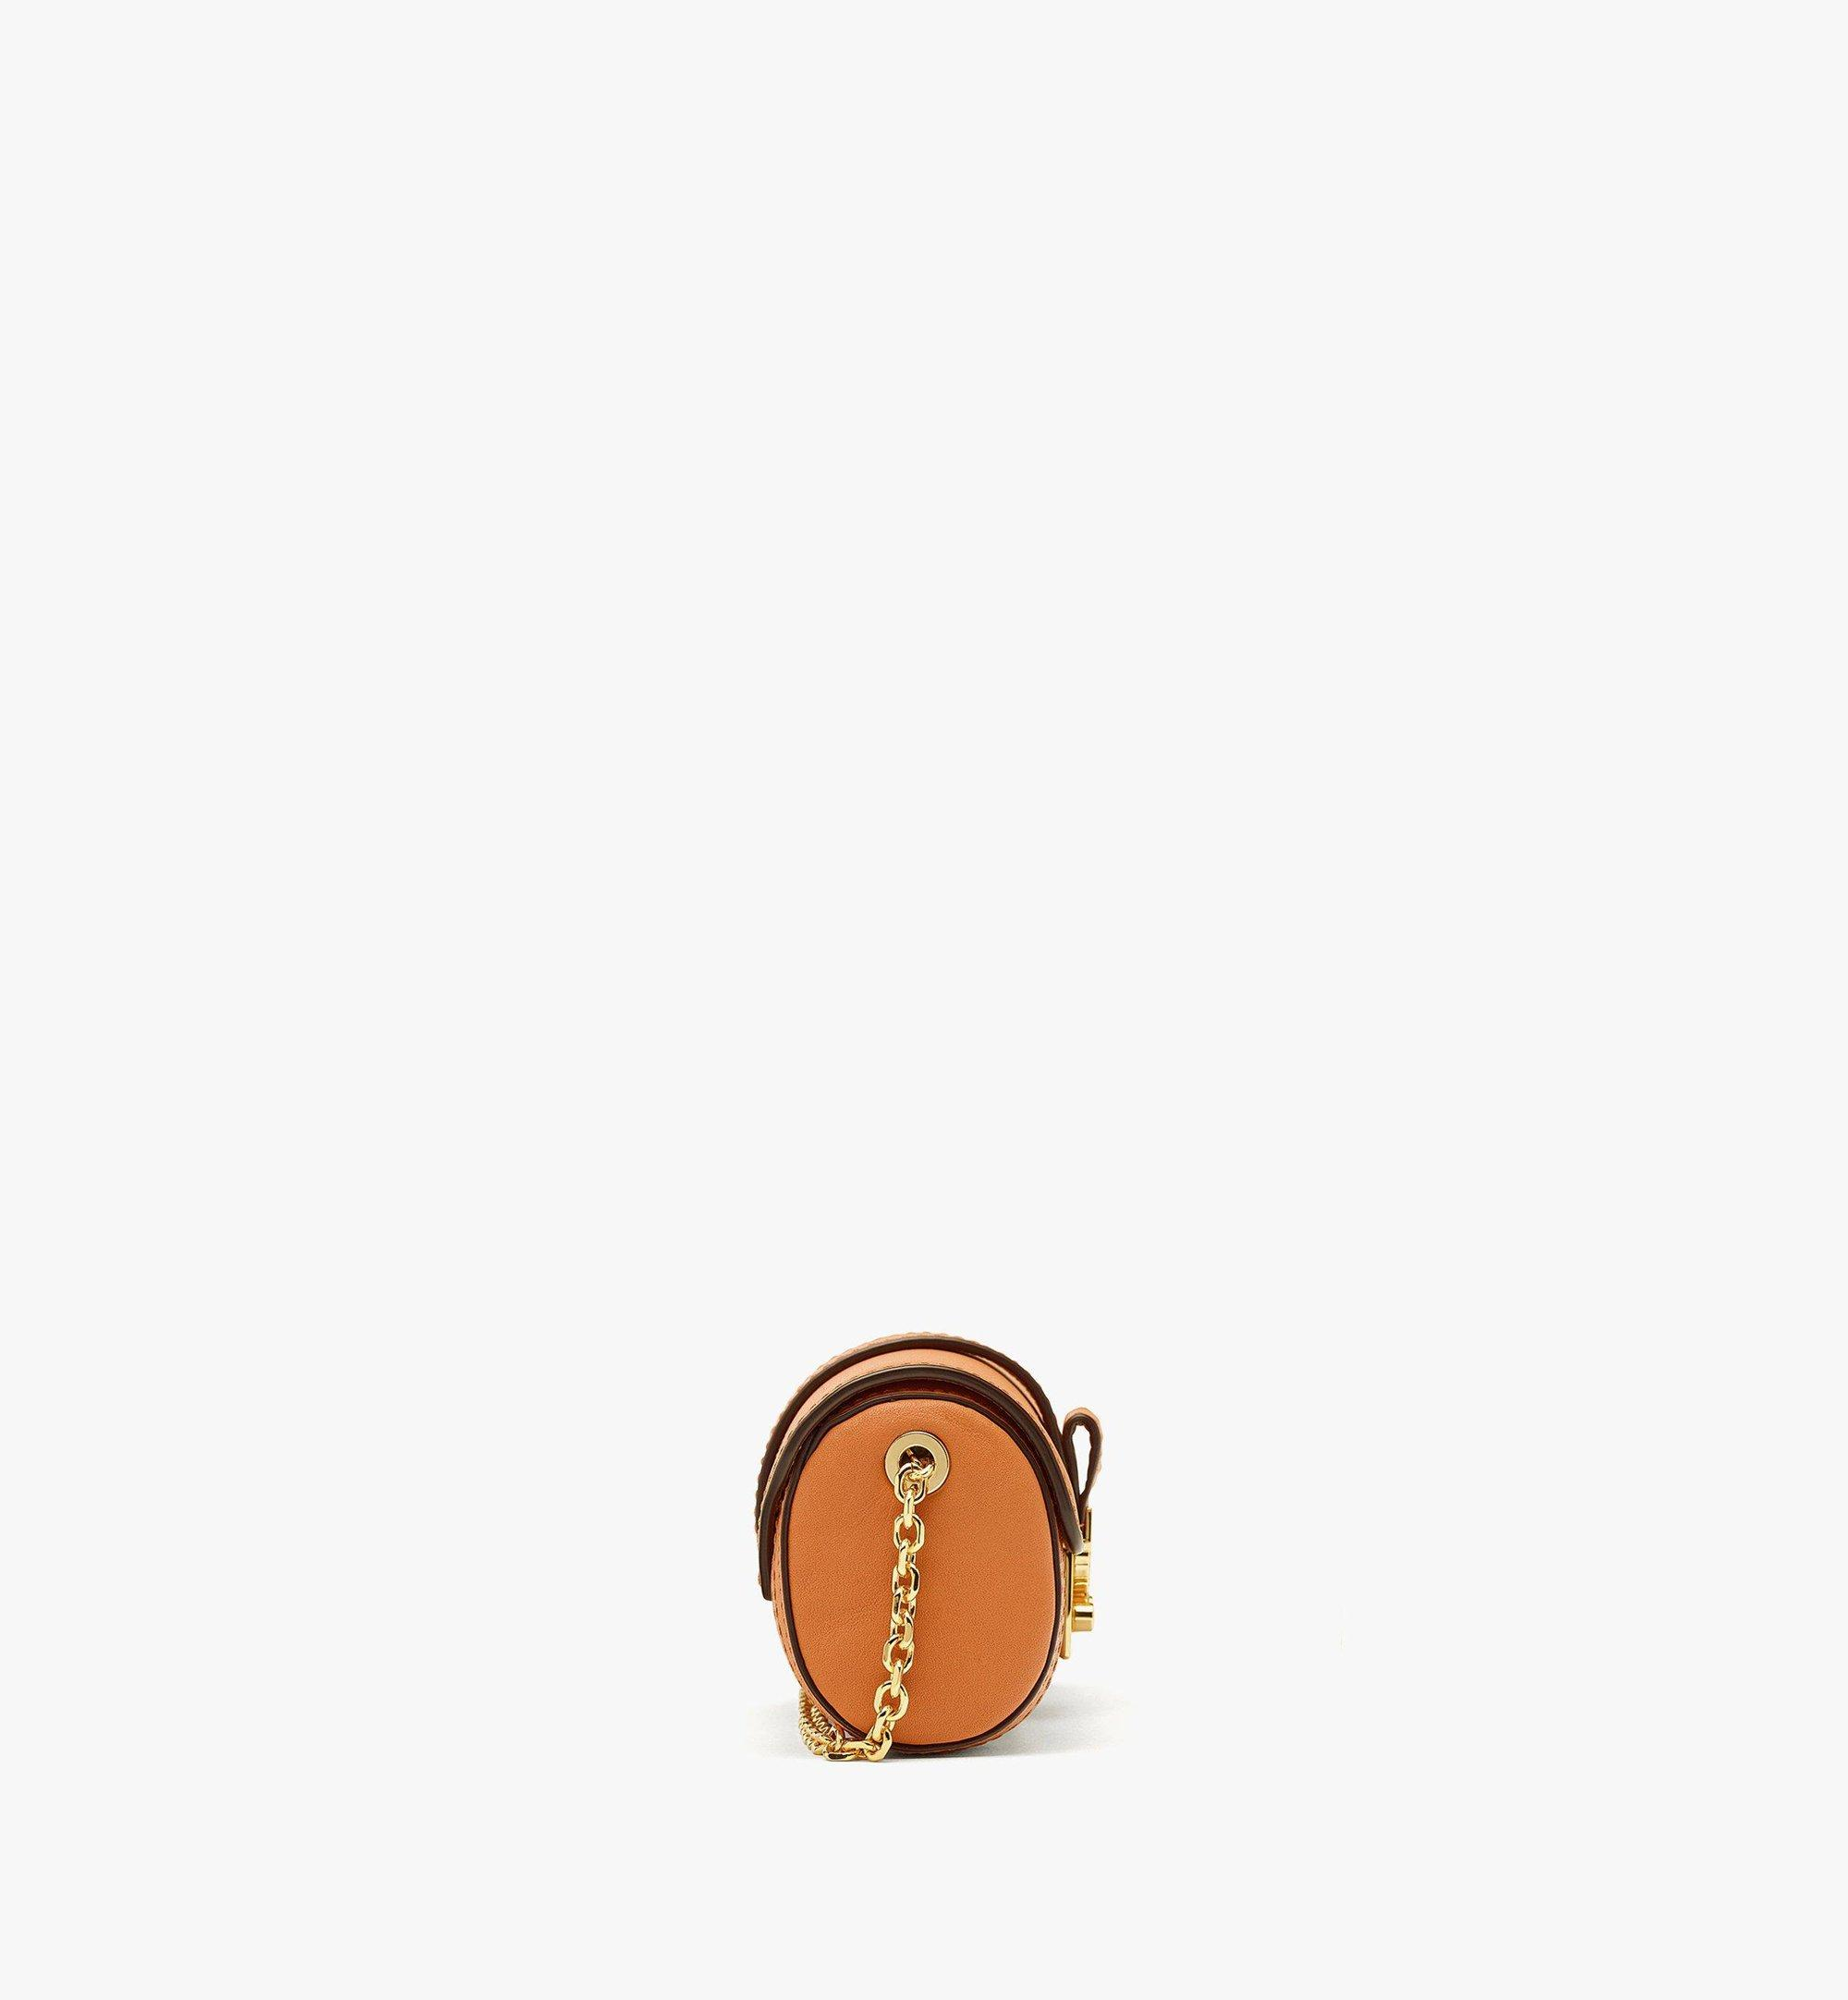 MCM Tracy Cylinder Bag in Visetos Cognac MYZBSXT01CO001 Alternate View 1